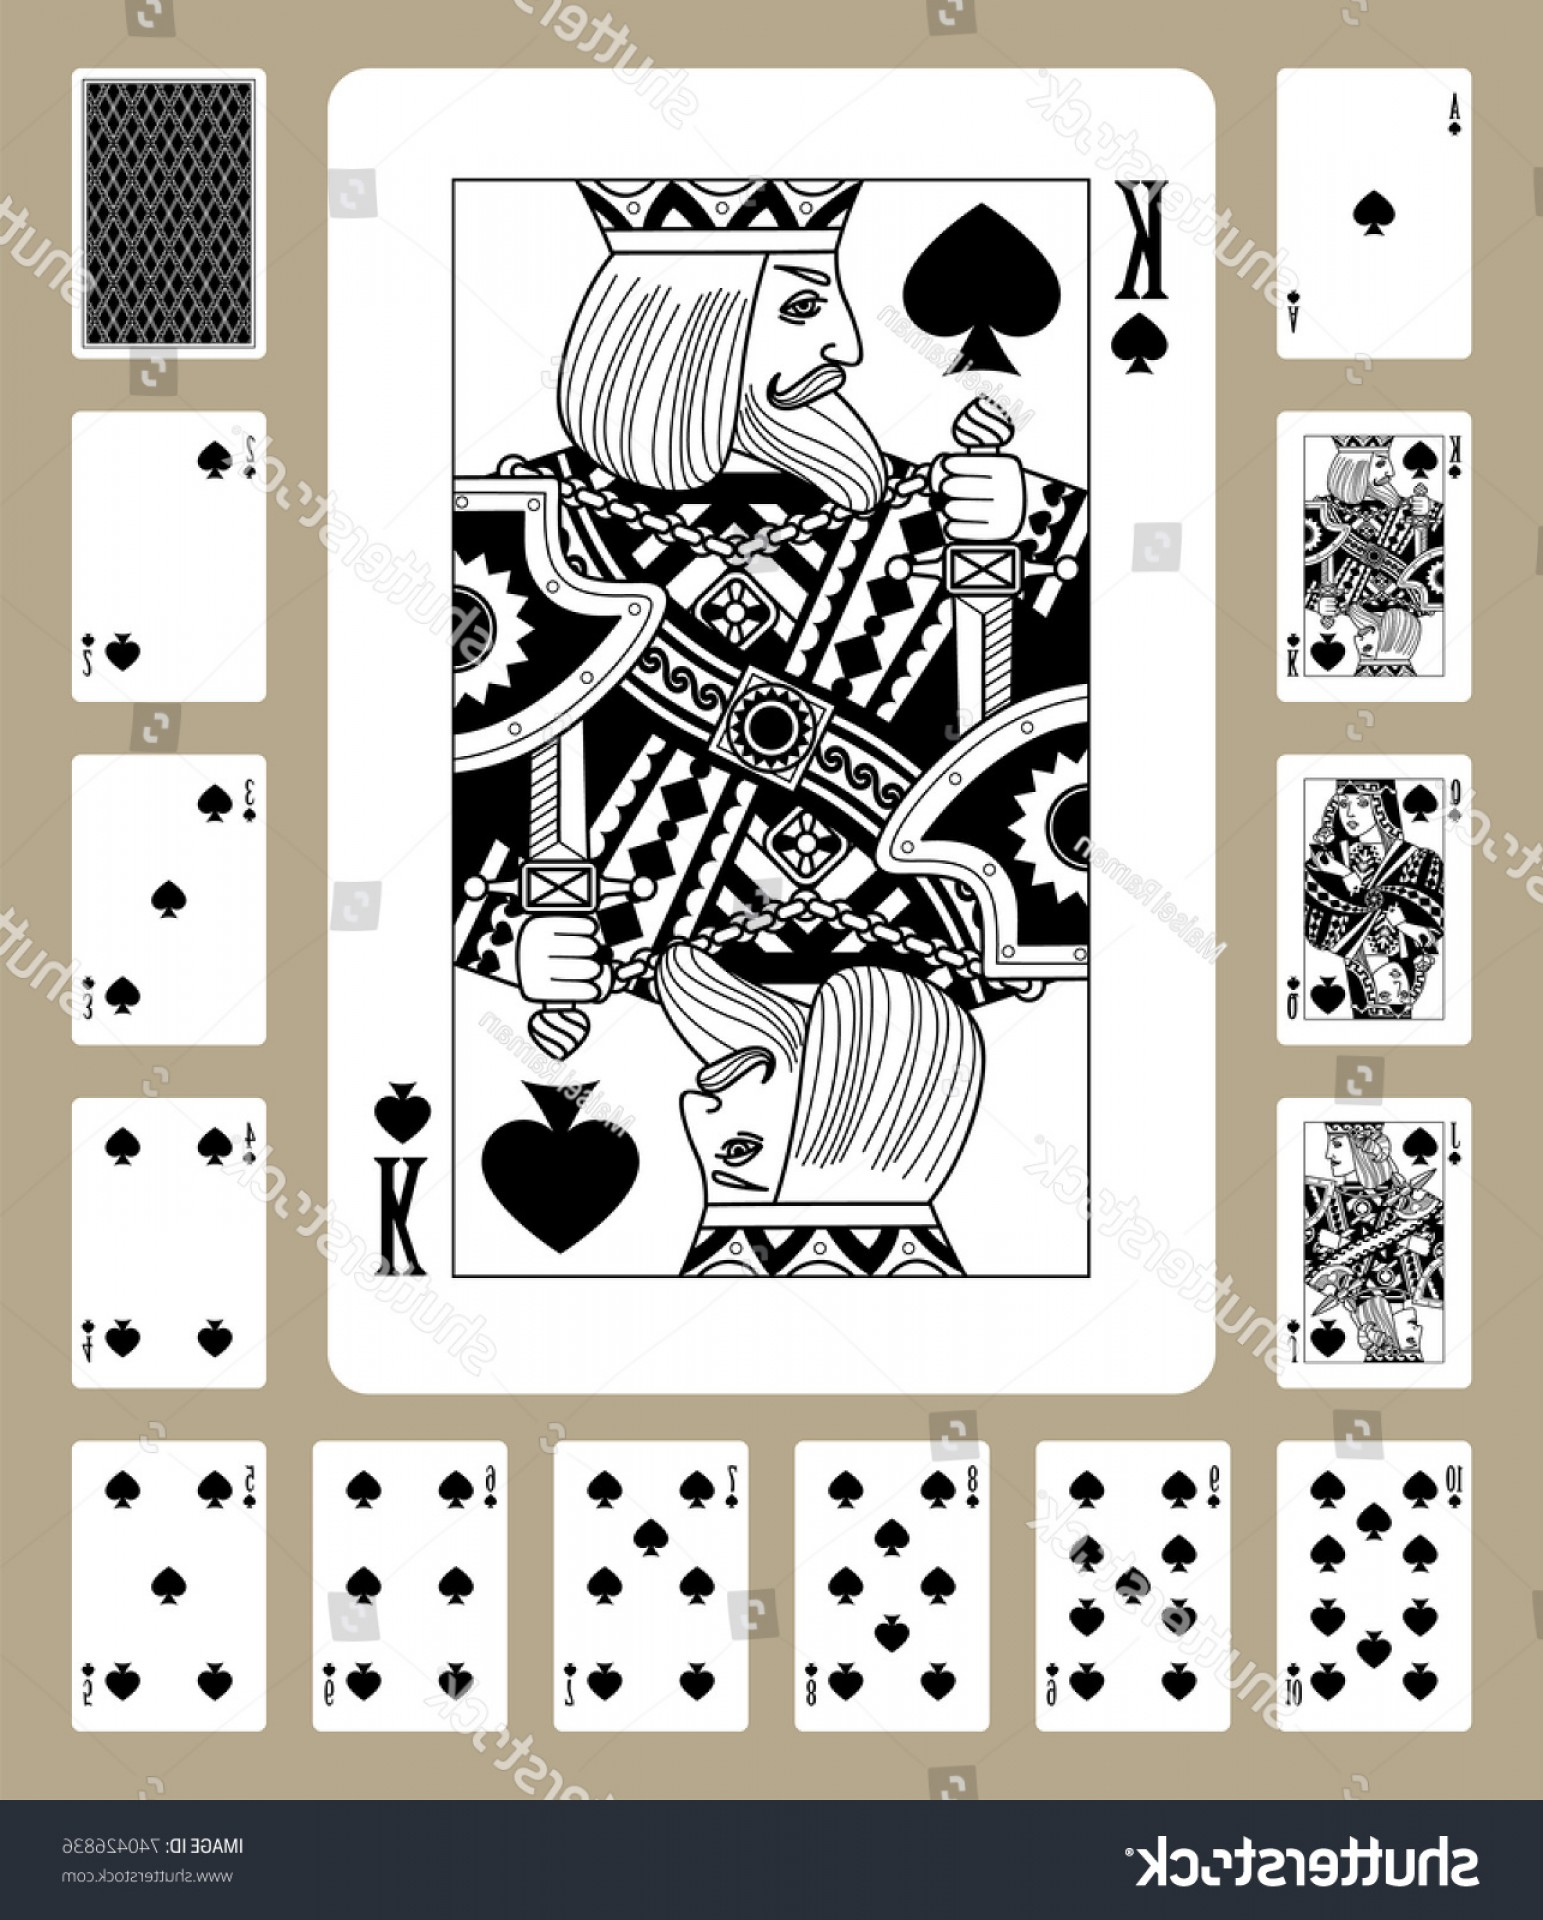 Playing Card Design Vector Illustration: Playing Cards Spades Suit Black White